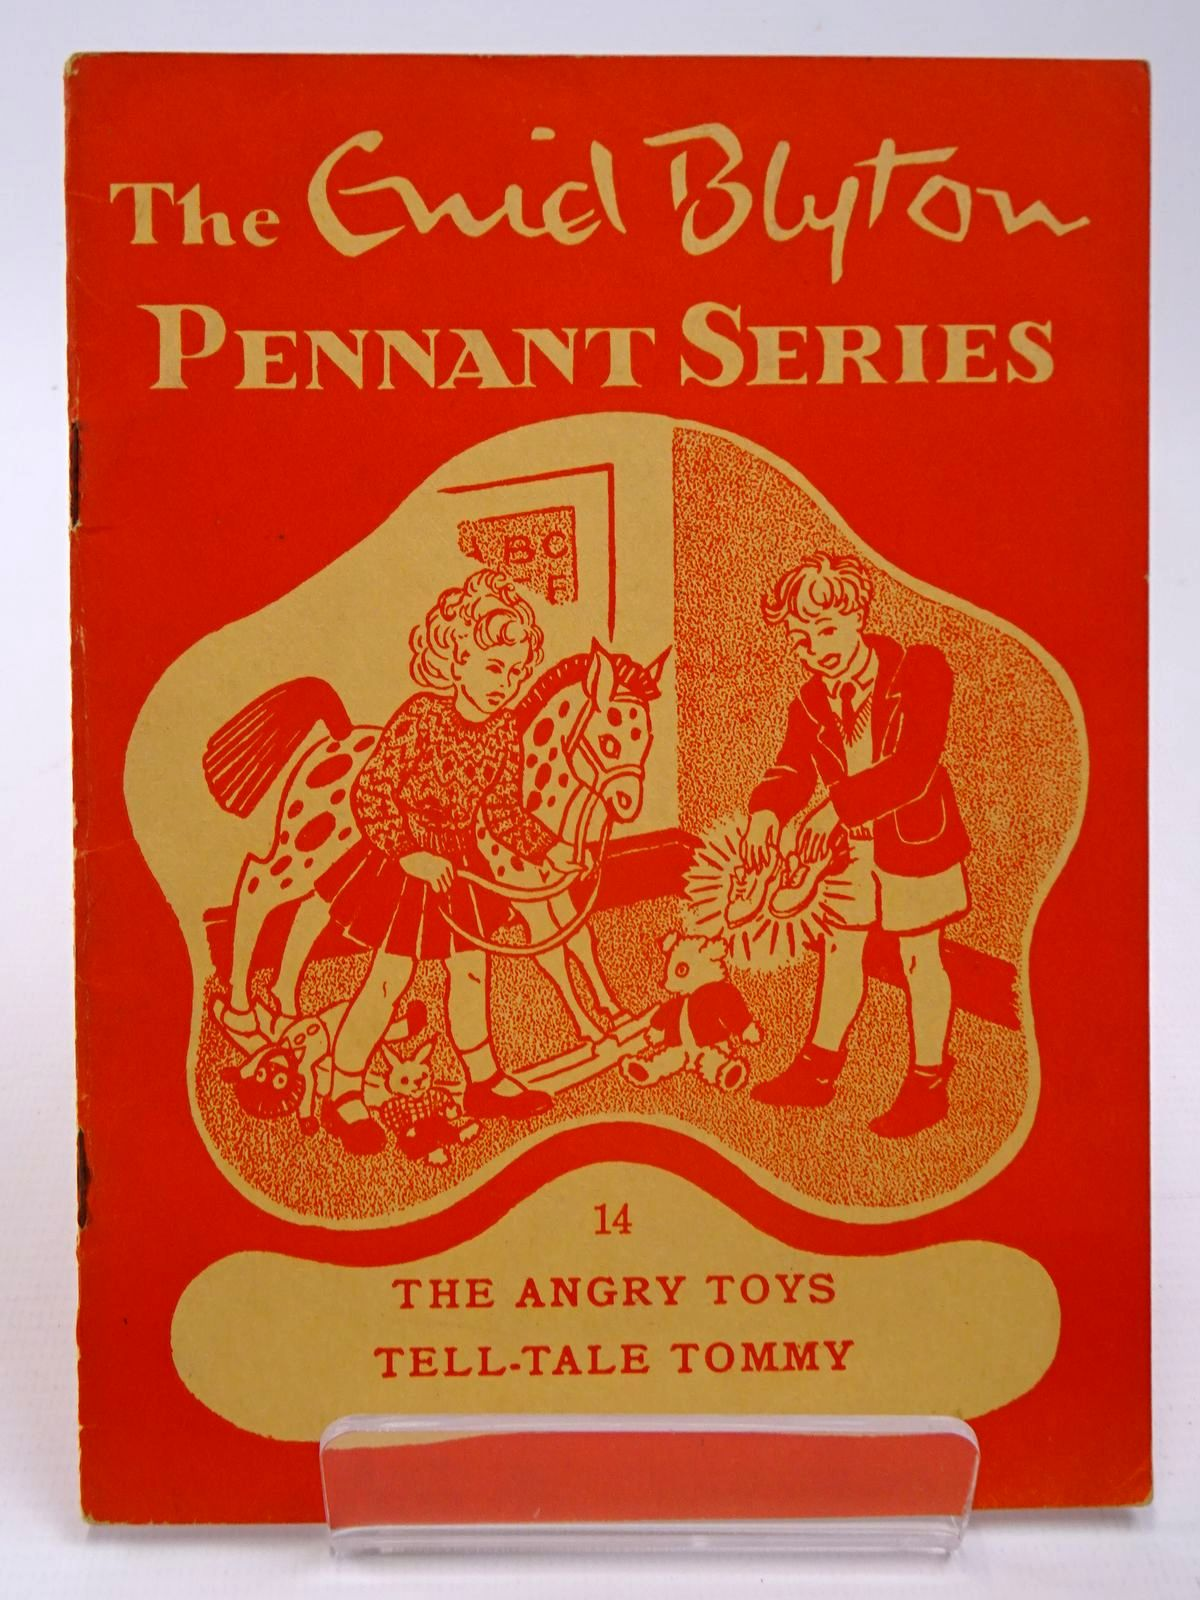 Photo of THE ENID BLYTON PENNANT SERIES No. 14 THE ANGRY TOYS / TELL-TALE TOMMY written by Blyton, Enid illustrated by Soper, Eileen<br />Main, Jean published by Macmillan & Co. Ltd. (STOCK CODE: 2130520)  for sale by Stella & Rose's Books